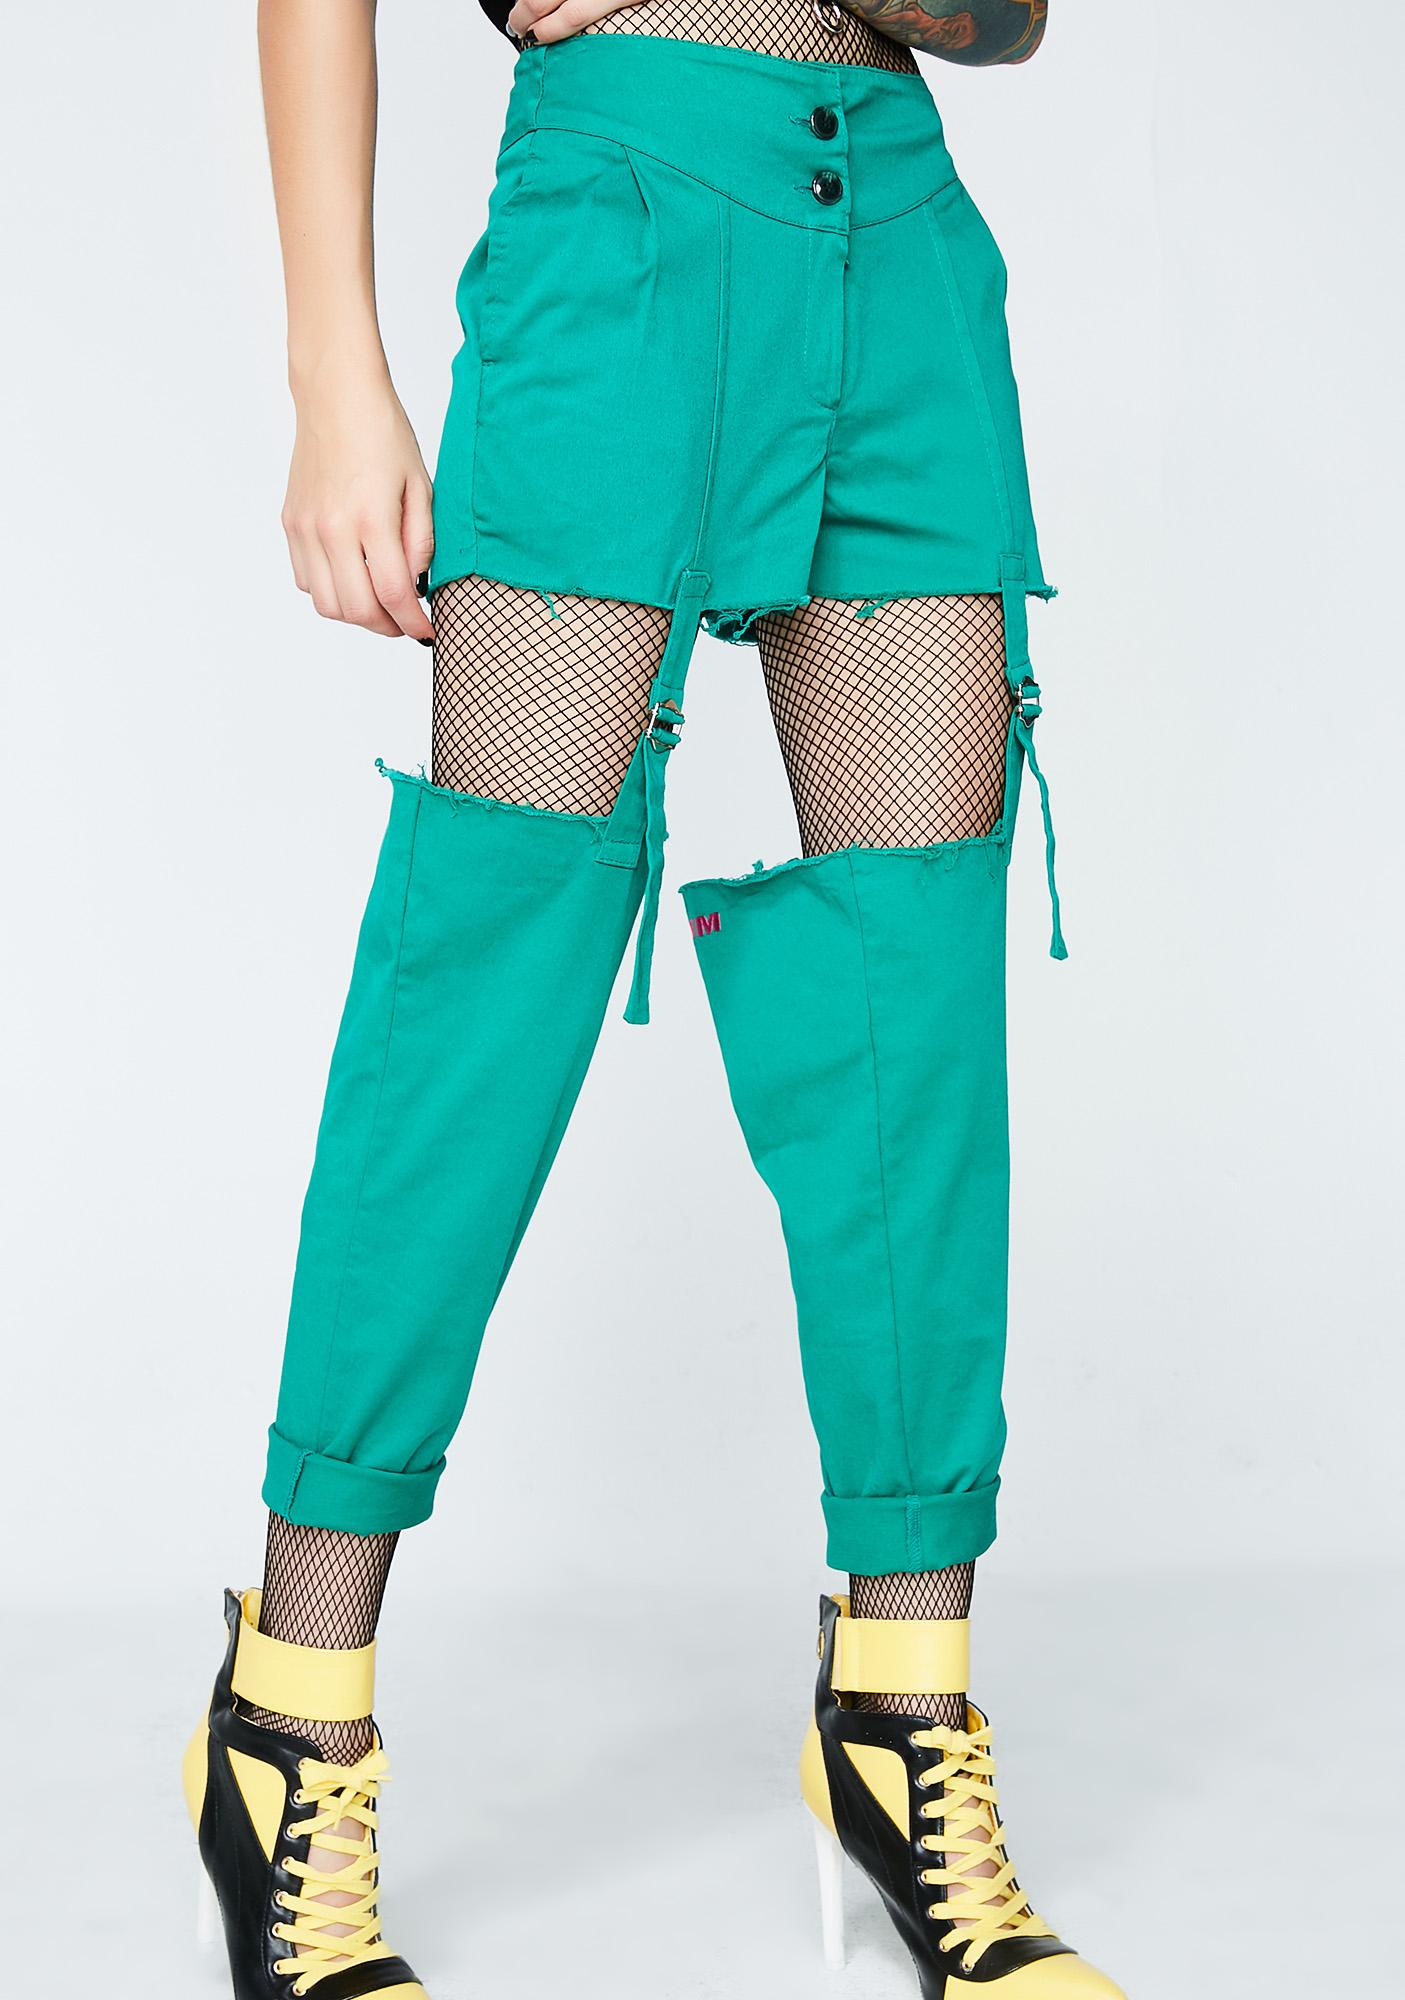 Skoot Garter Belt Pants